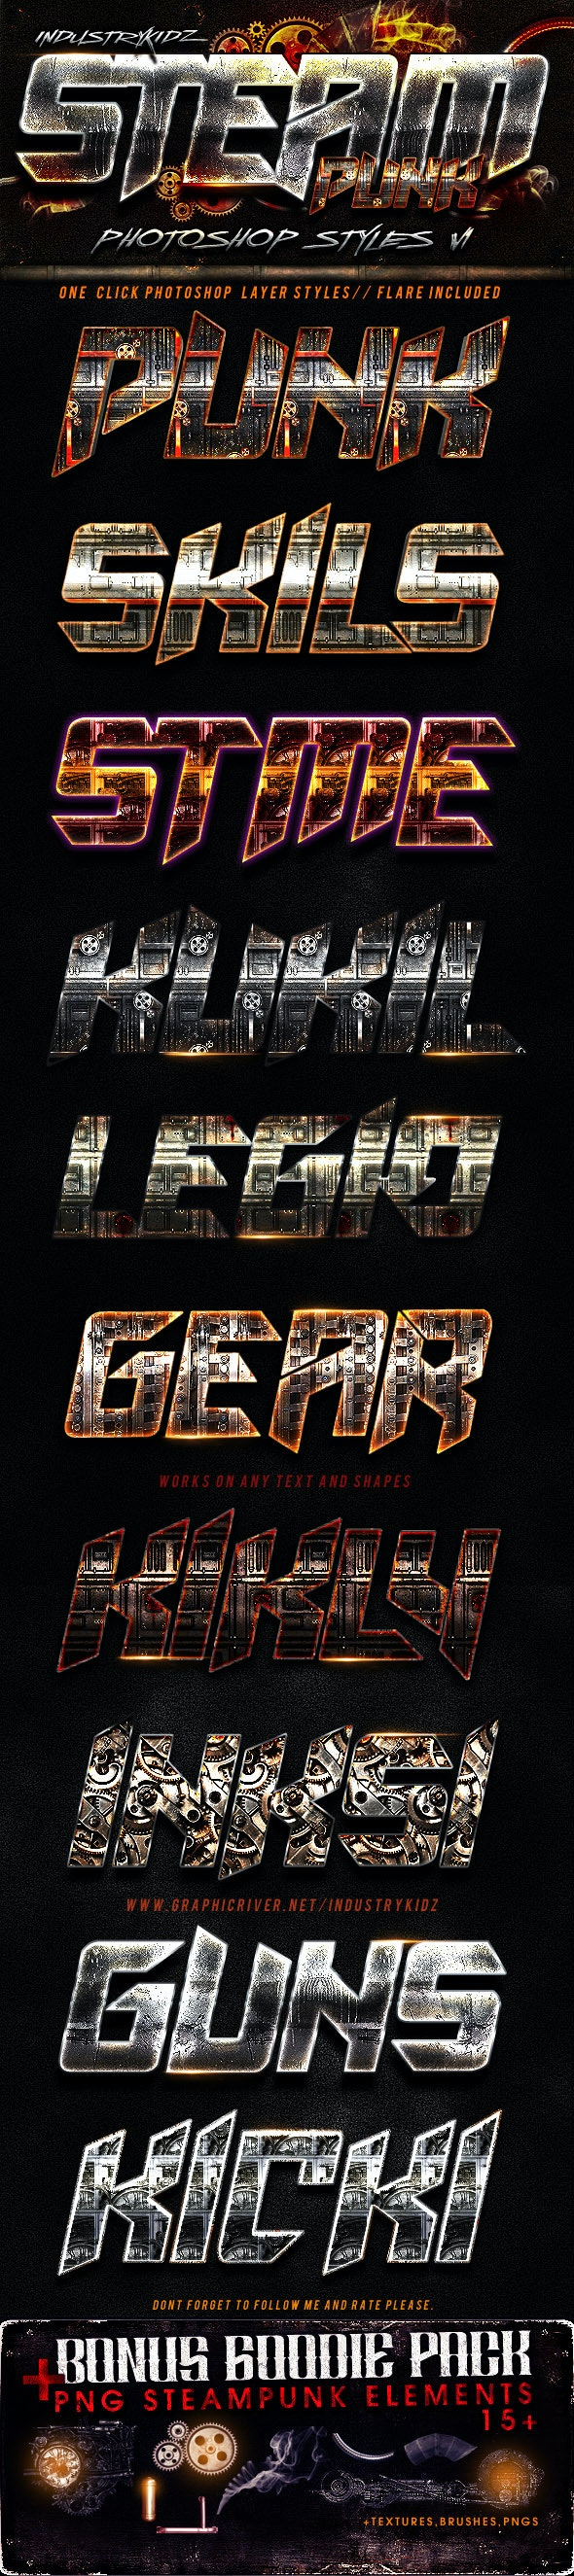 SteamPunk Photoshop Styles  - Text Effects Styles